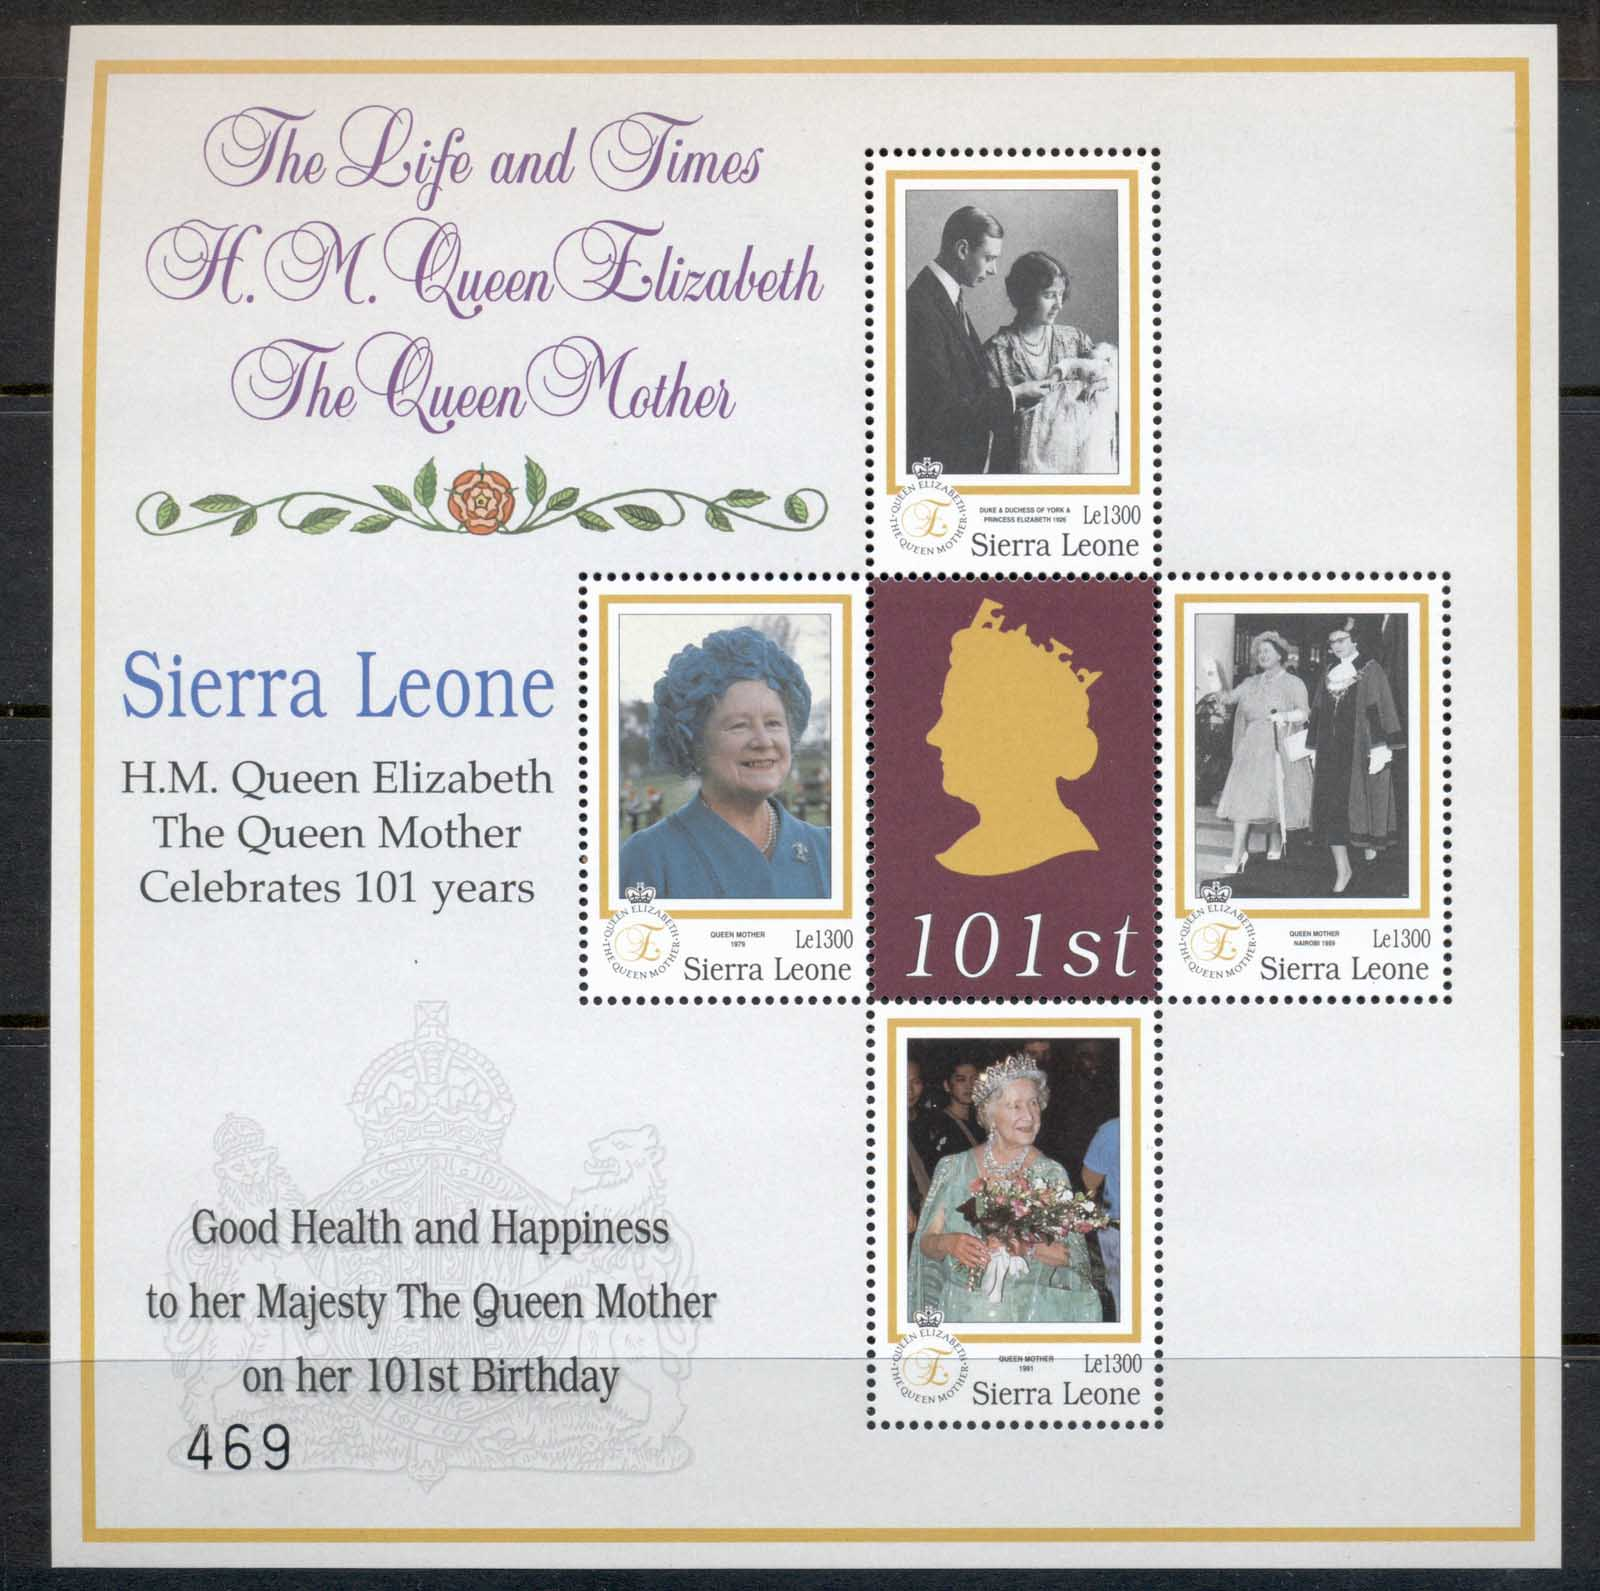 Sierra leone 2001 Queen Mother 101st Birthday MS MUH